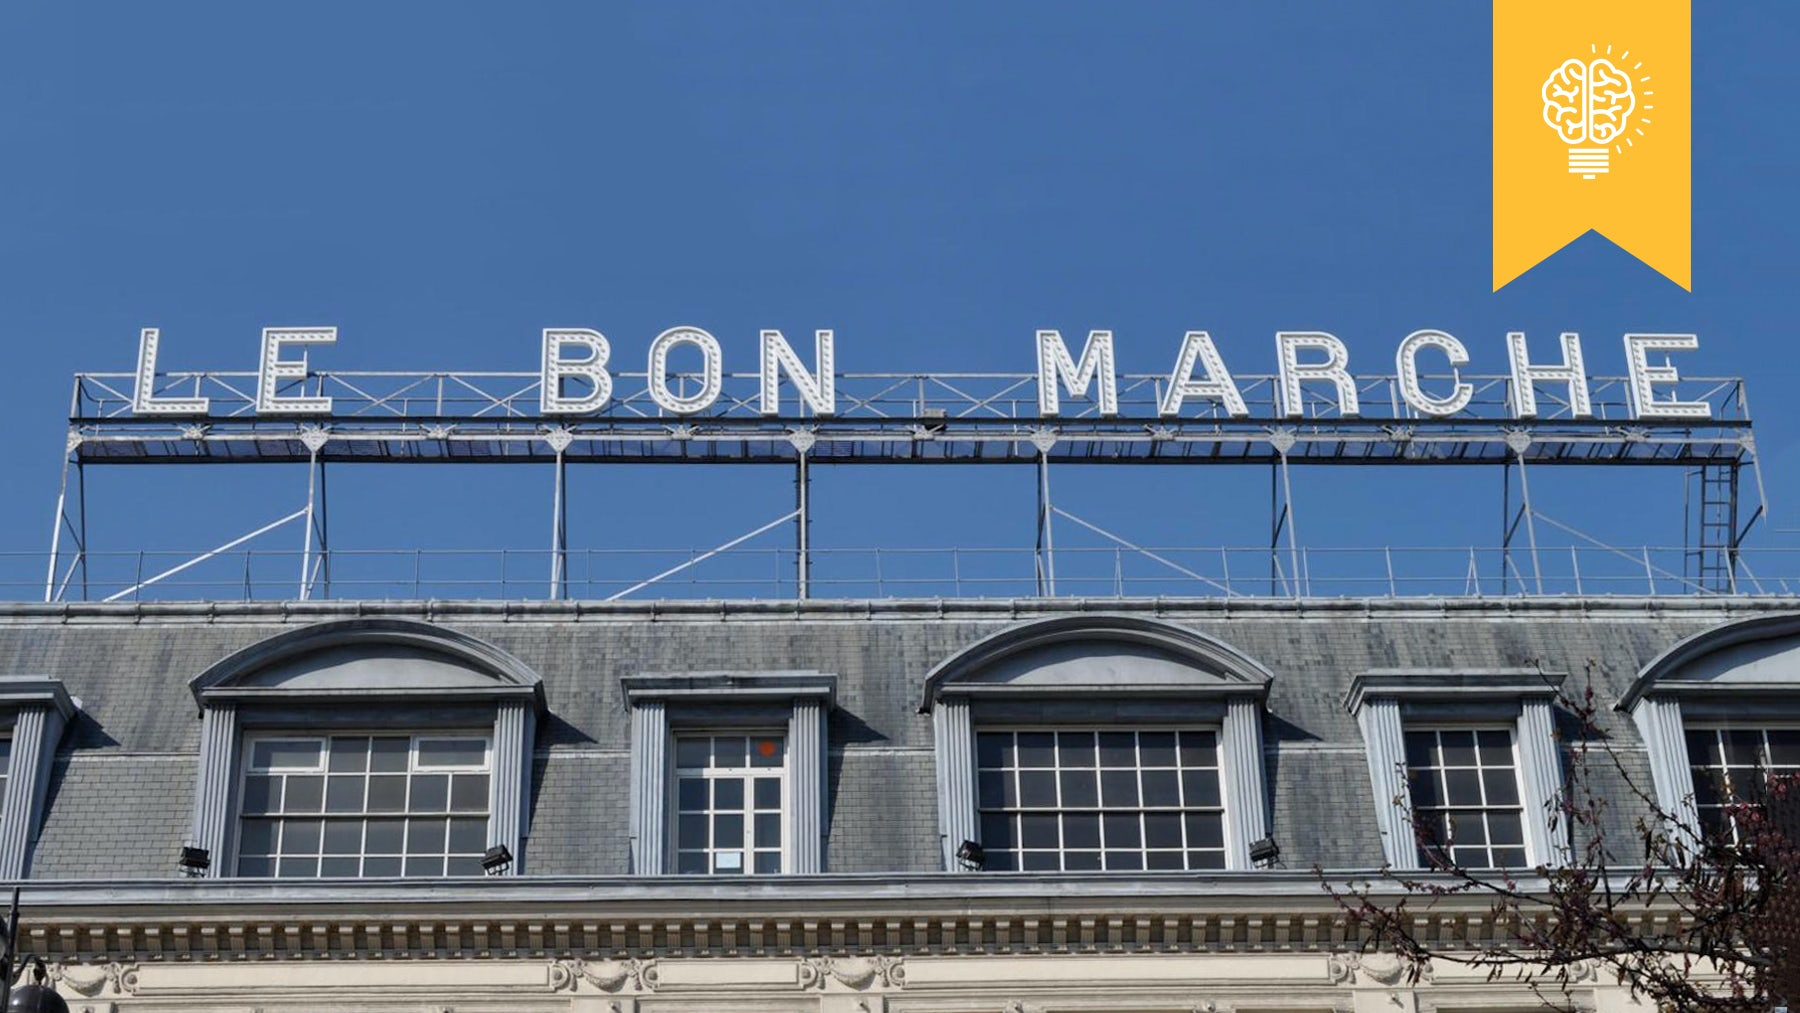 Le Bon Marché in Paris | Source: Flickr/Phil Beard